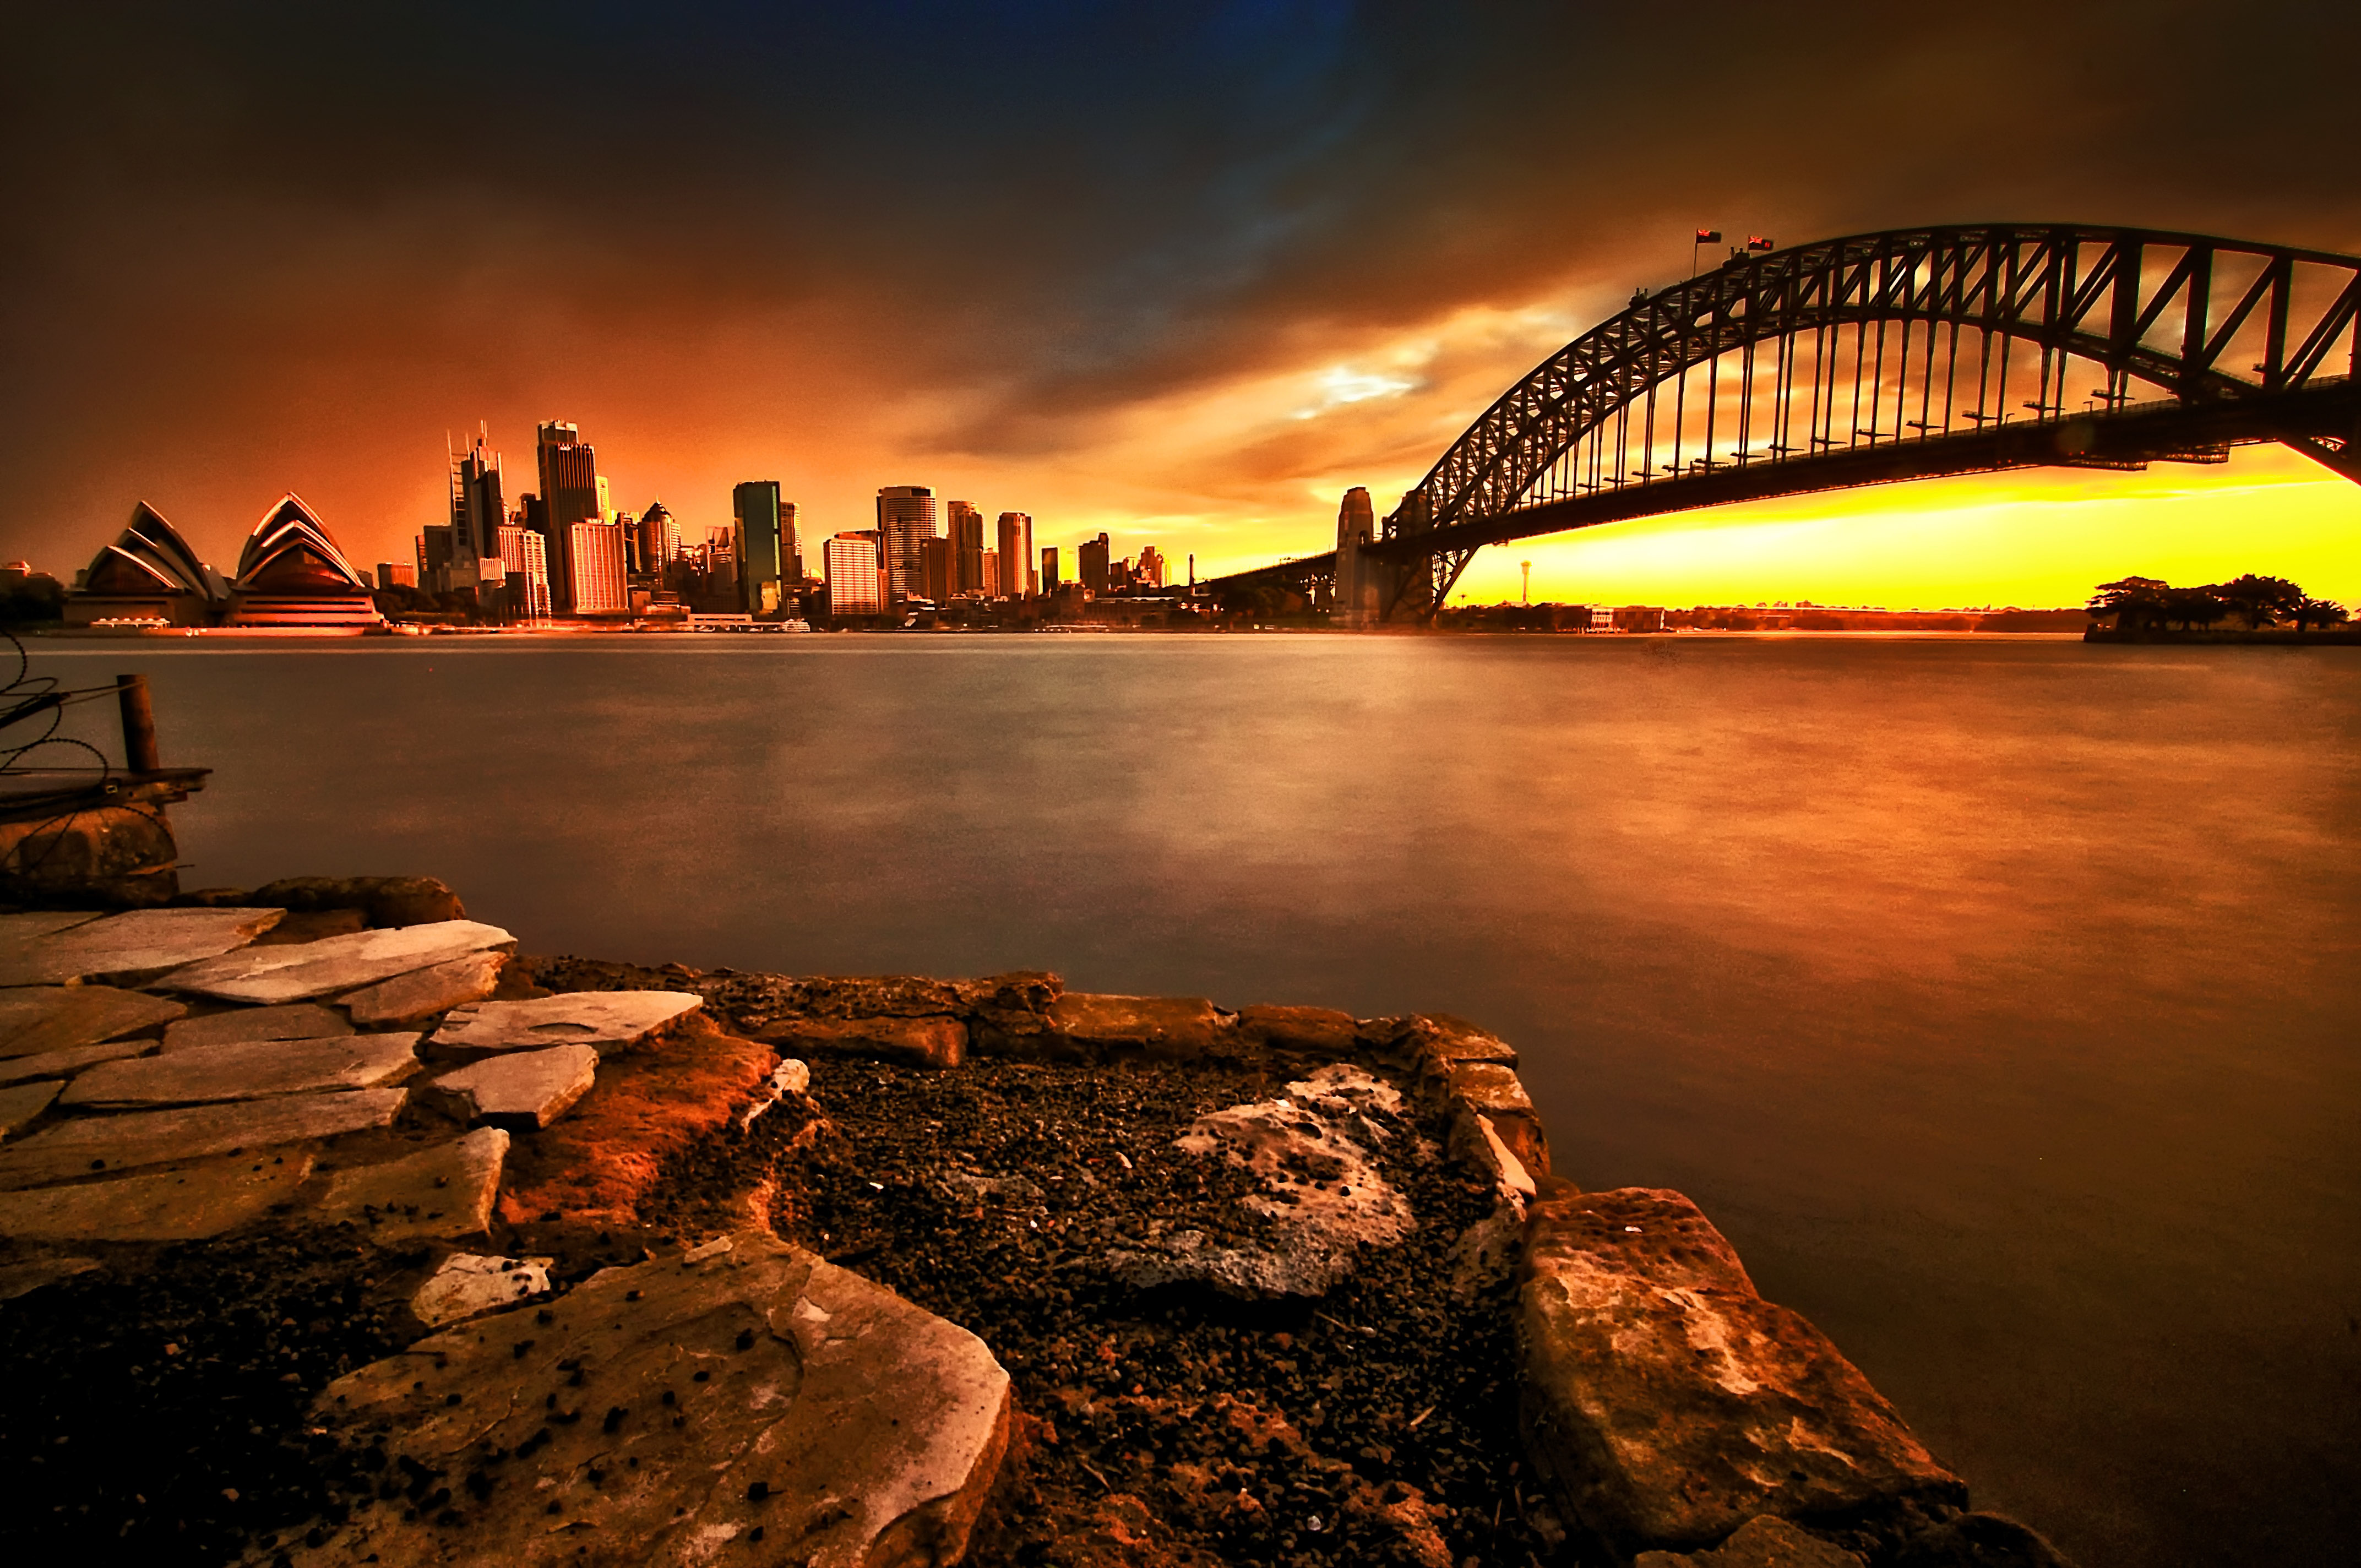 Red Sails In The Sunset, Sydney Harbour